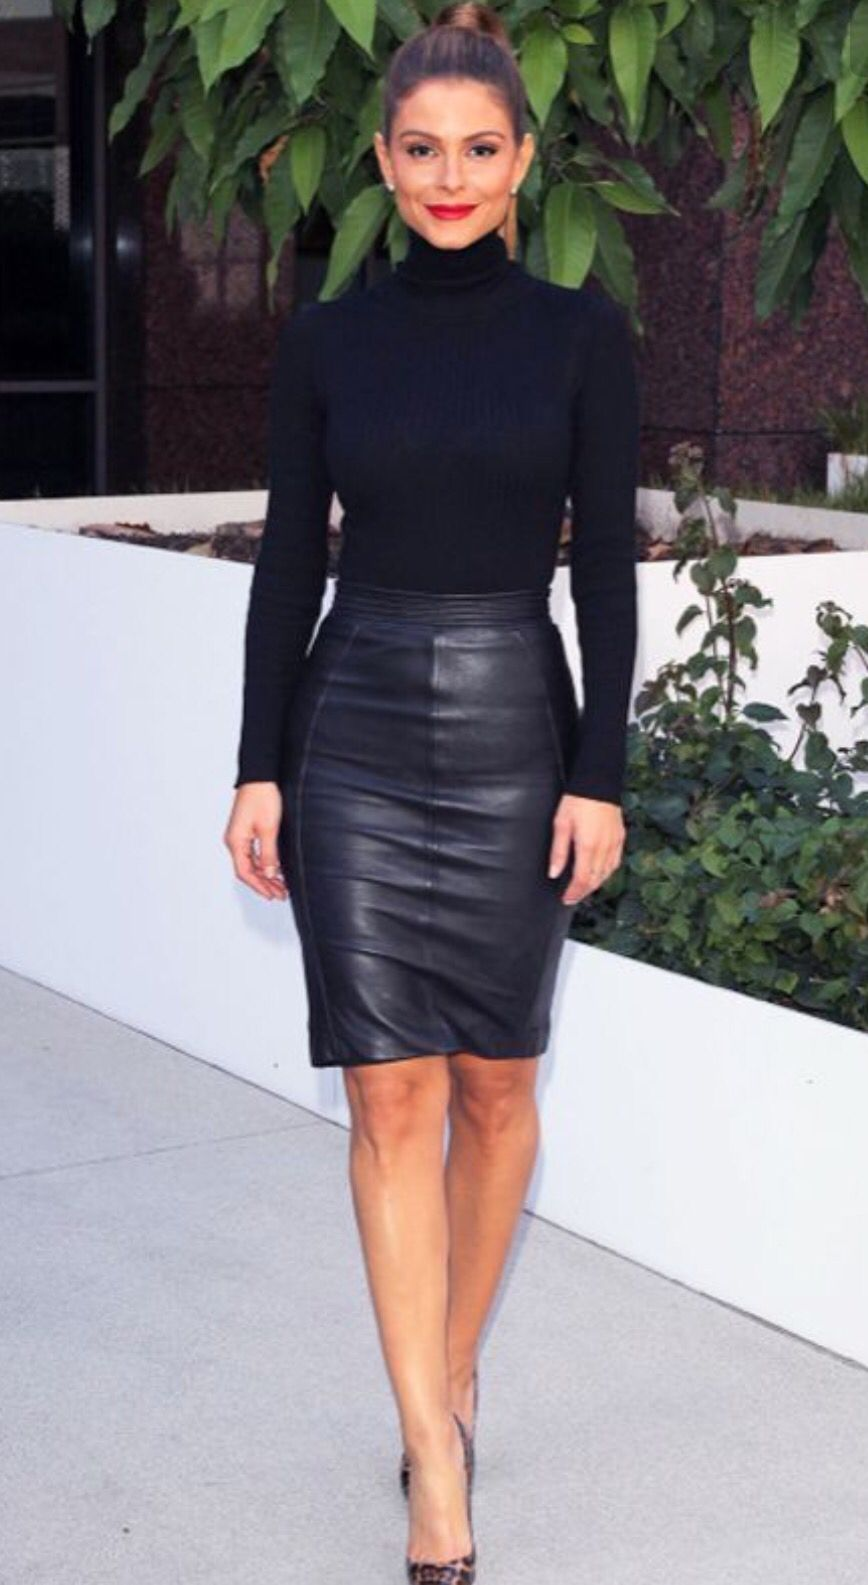 Black turtle neck and leather skirt | Fall Into Fashion ...